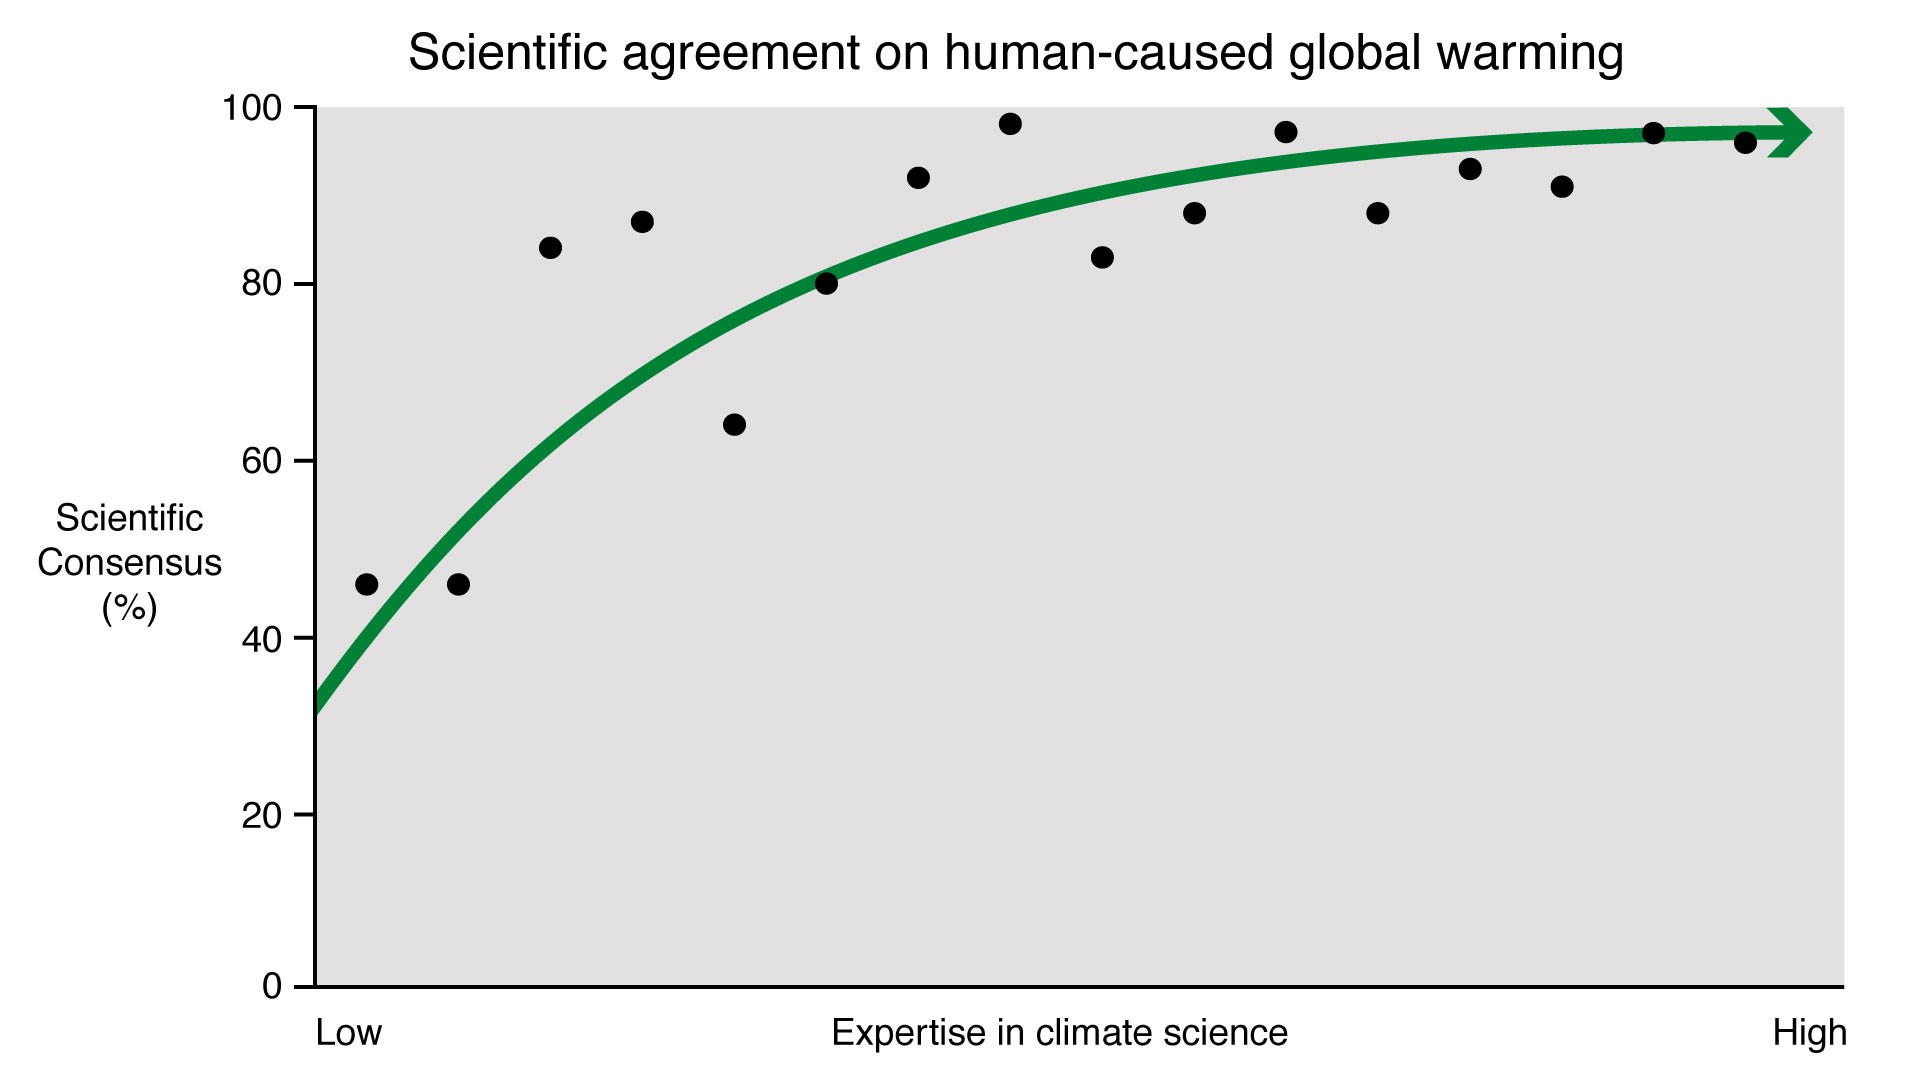 021 Expertise Vs Consensus Global Warming Research Paper Outstanding Conclusion 1920